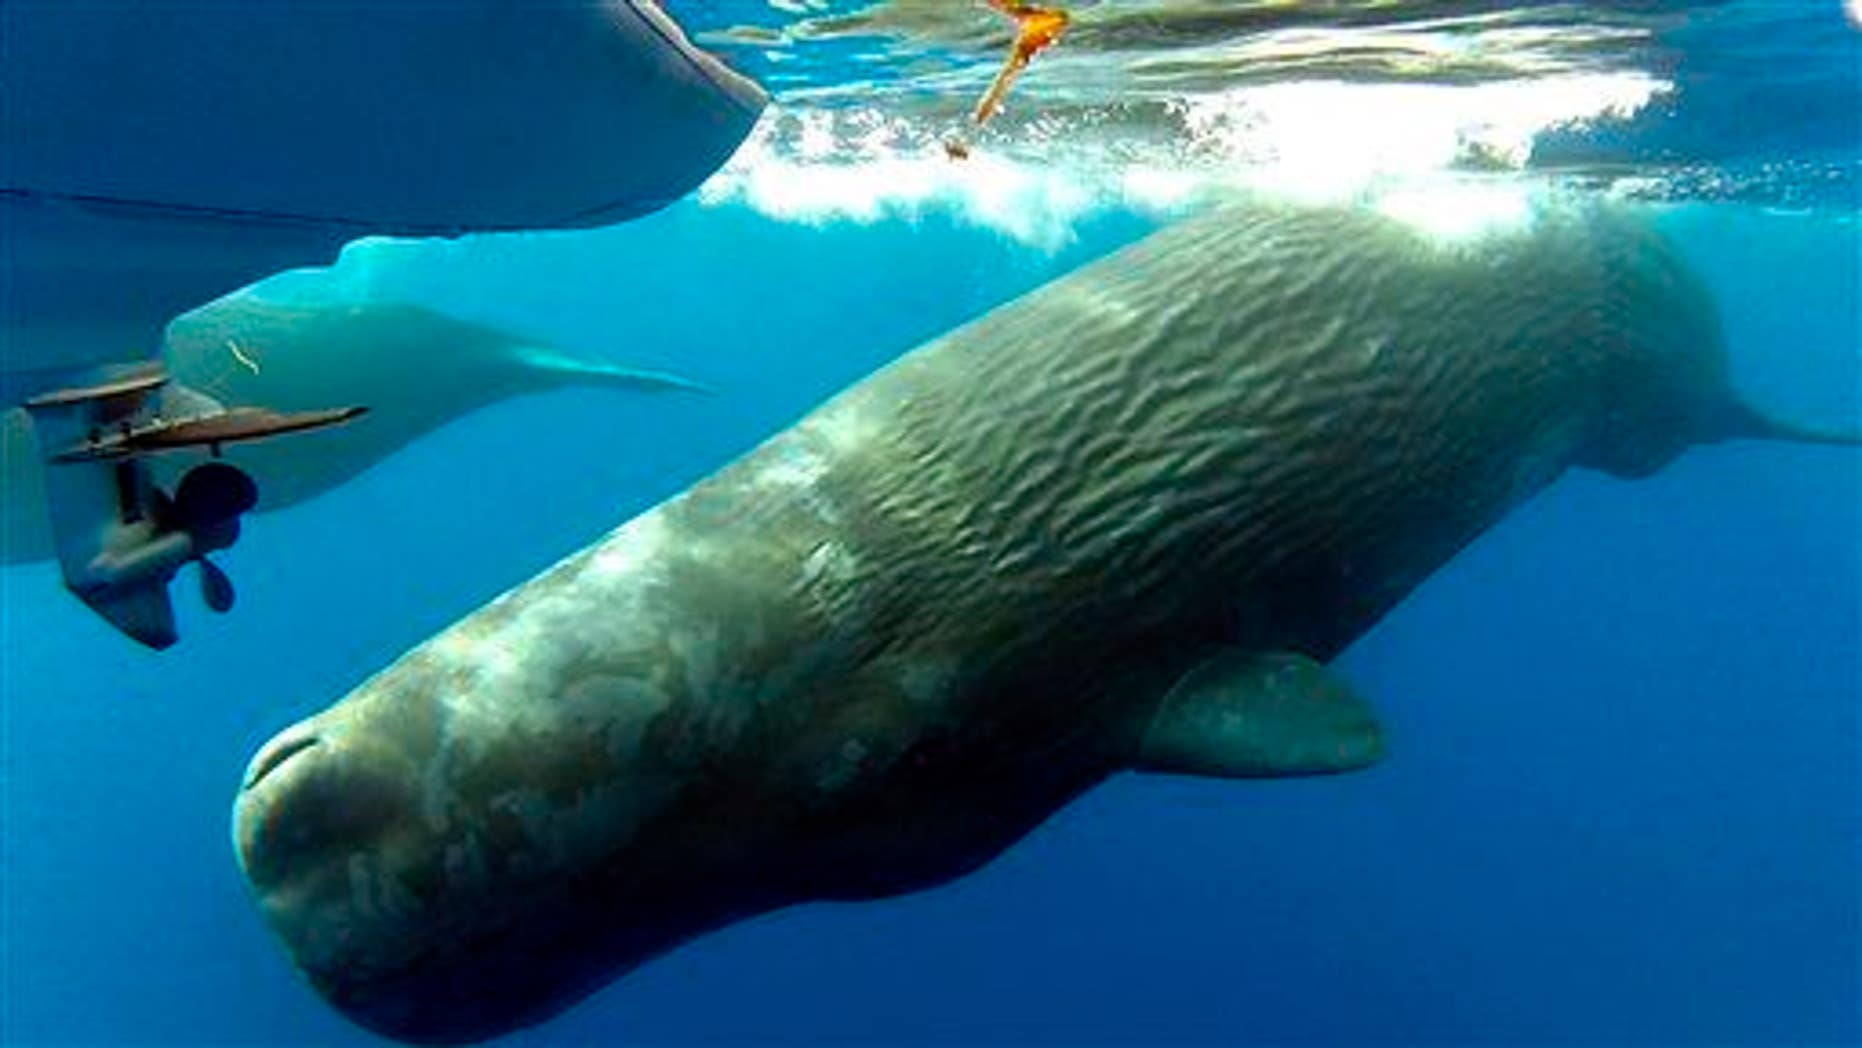 This Monday, Oct. 6, 2014 photo shows sperm whales swimming in the waters off the coast of Dana Point, Calif.